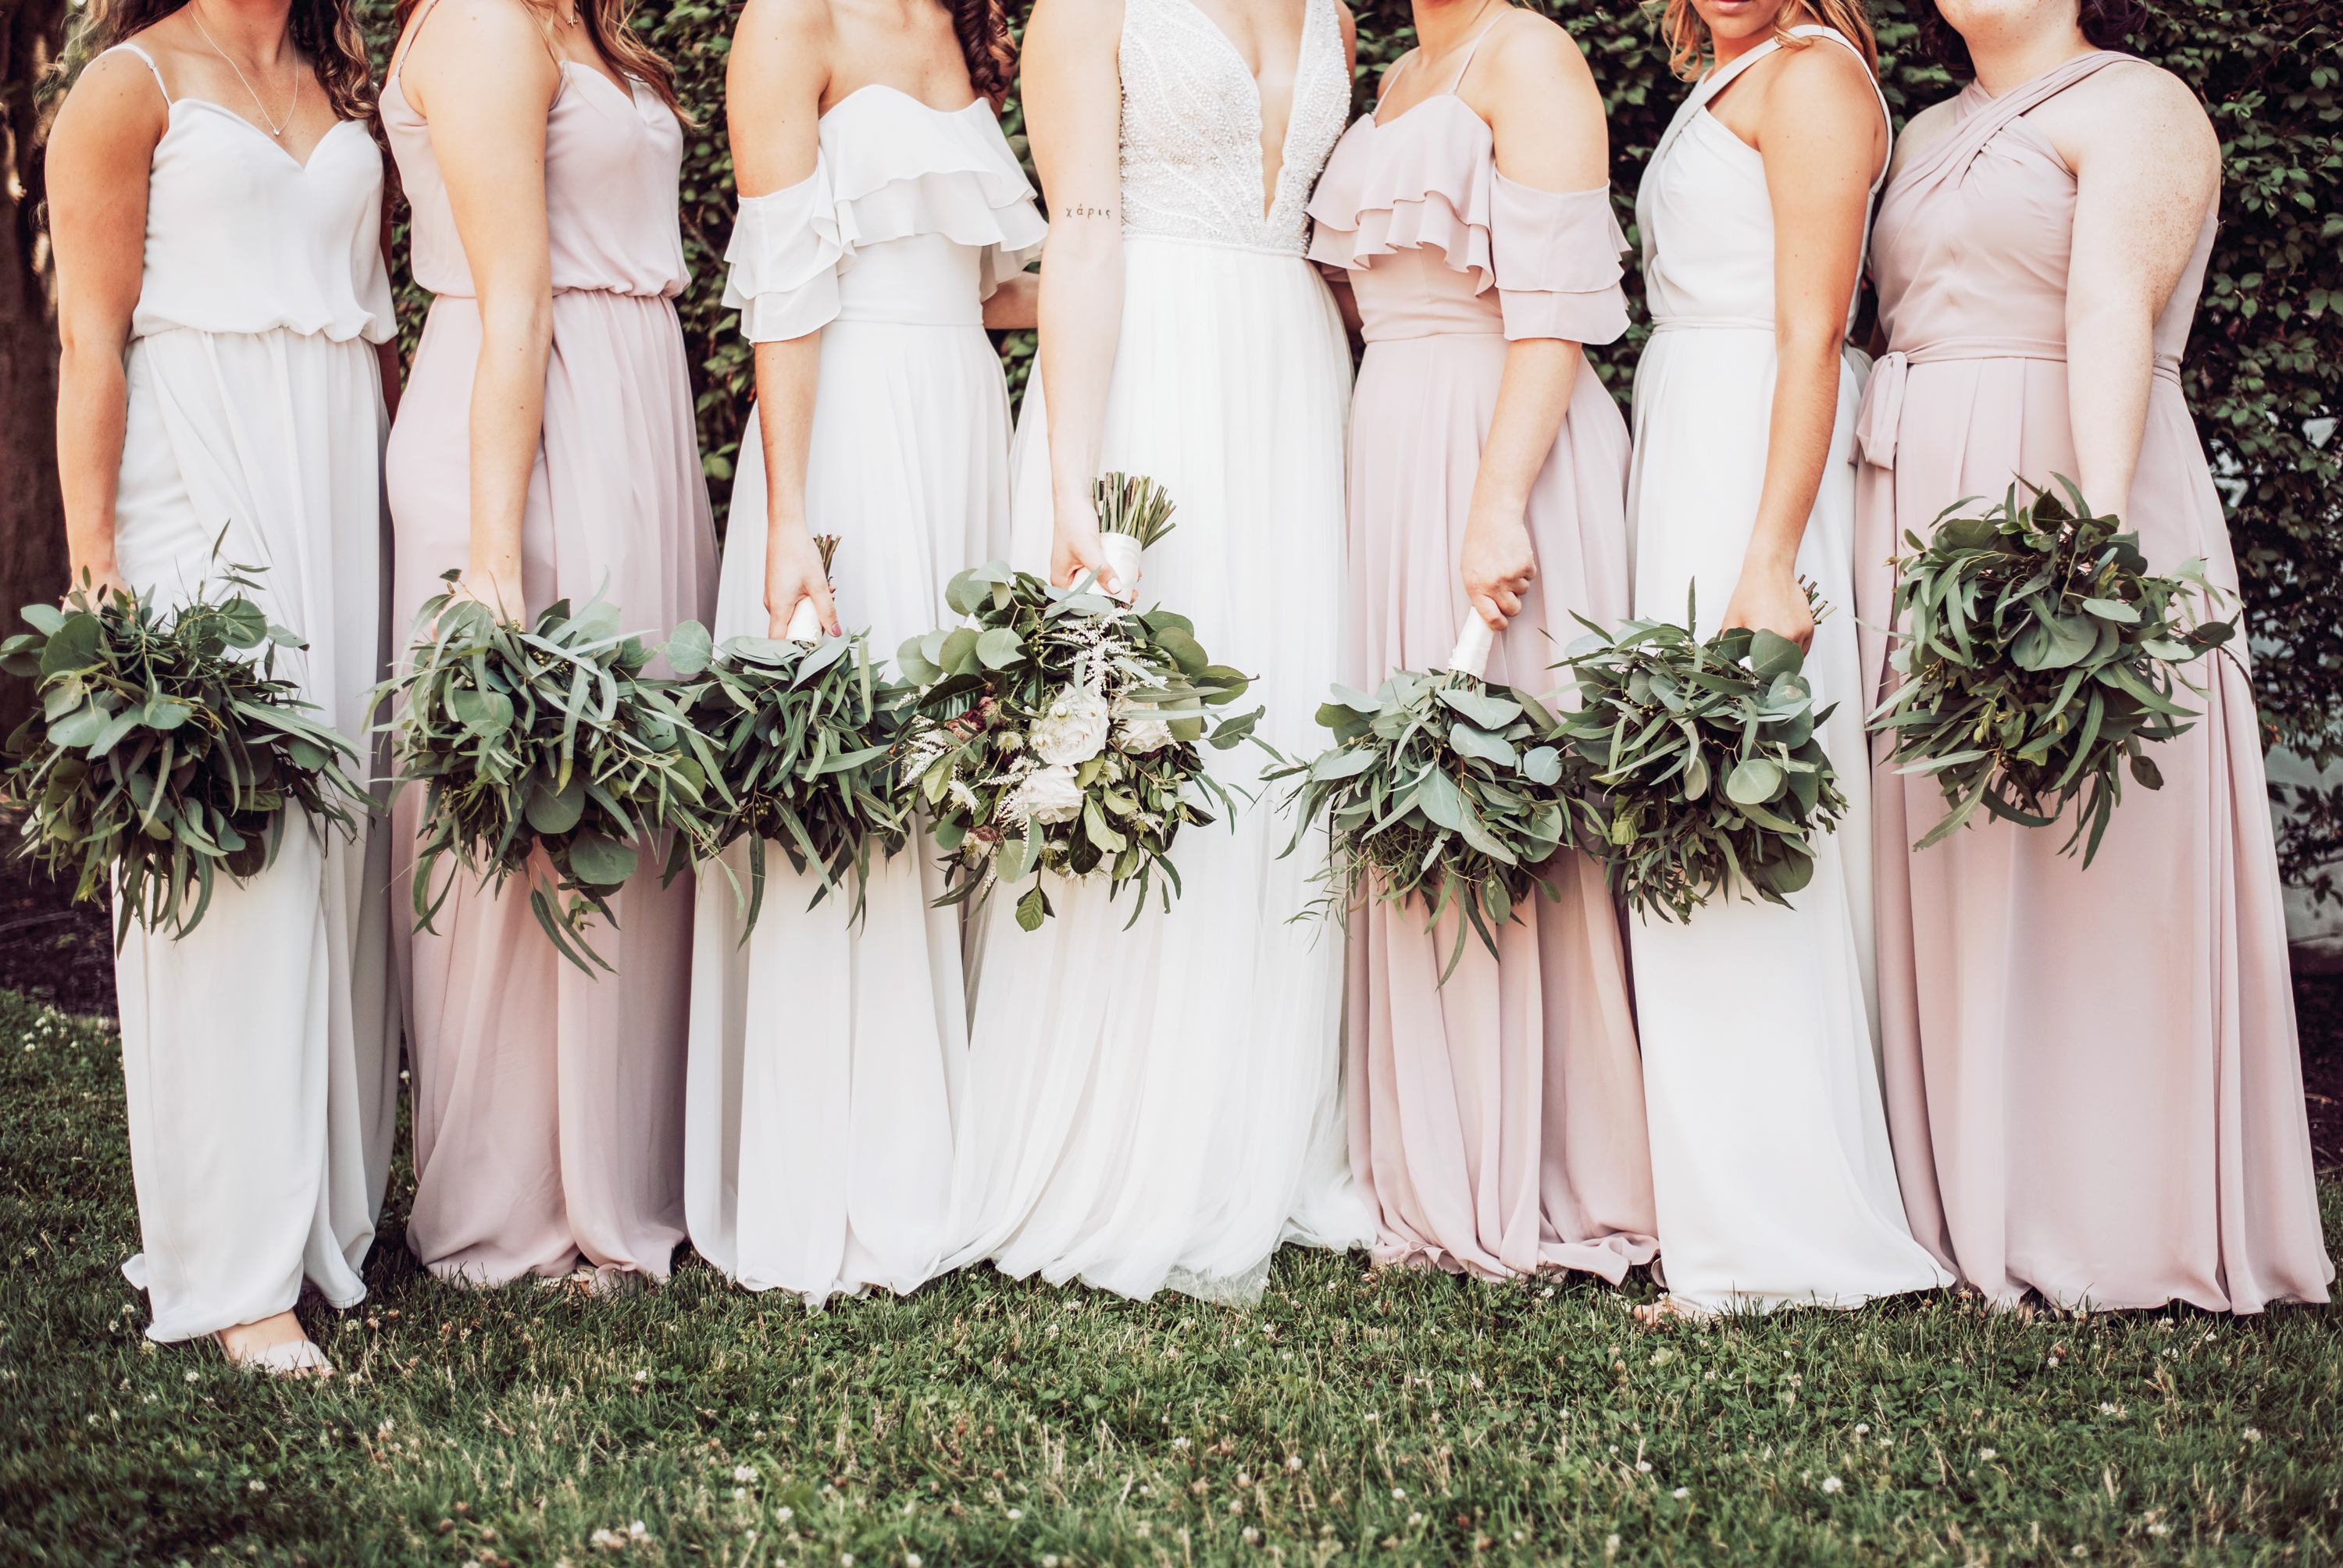 5 Things To Know If You're Going To Be A Bridesmaid